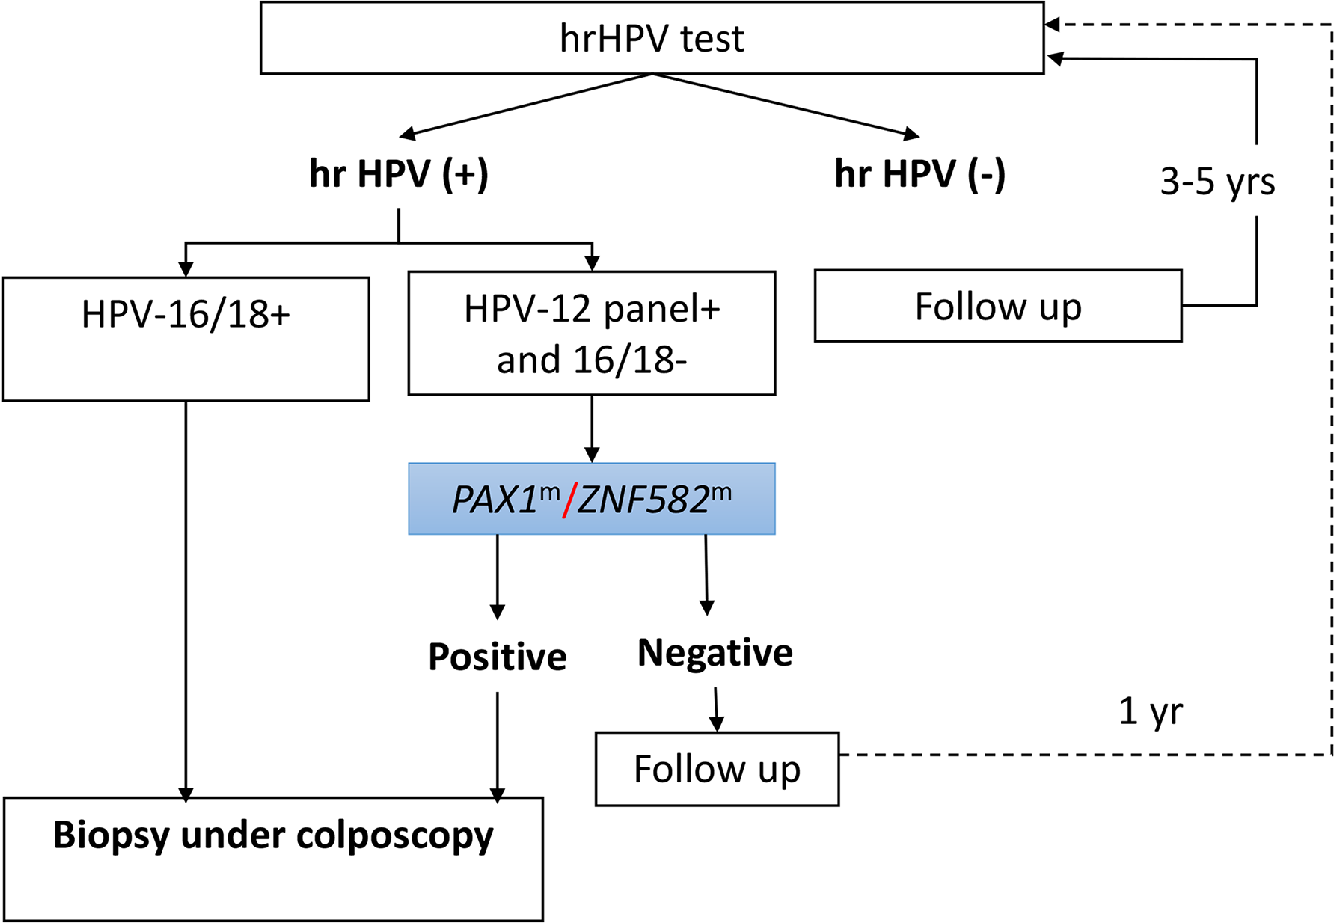 hpv high risk non 16 18 detected cancer aggressive scale